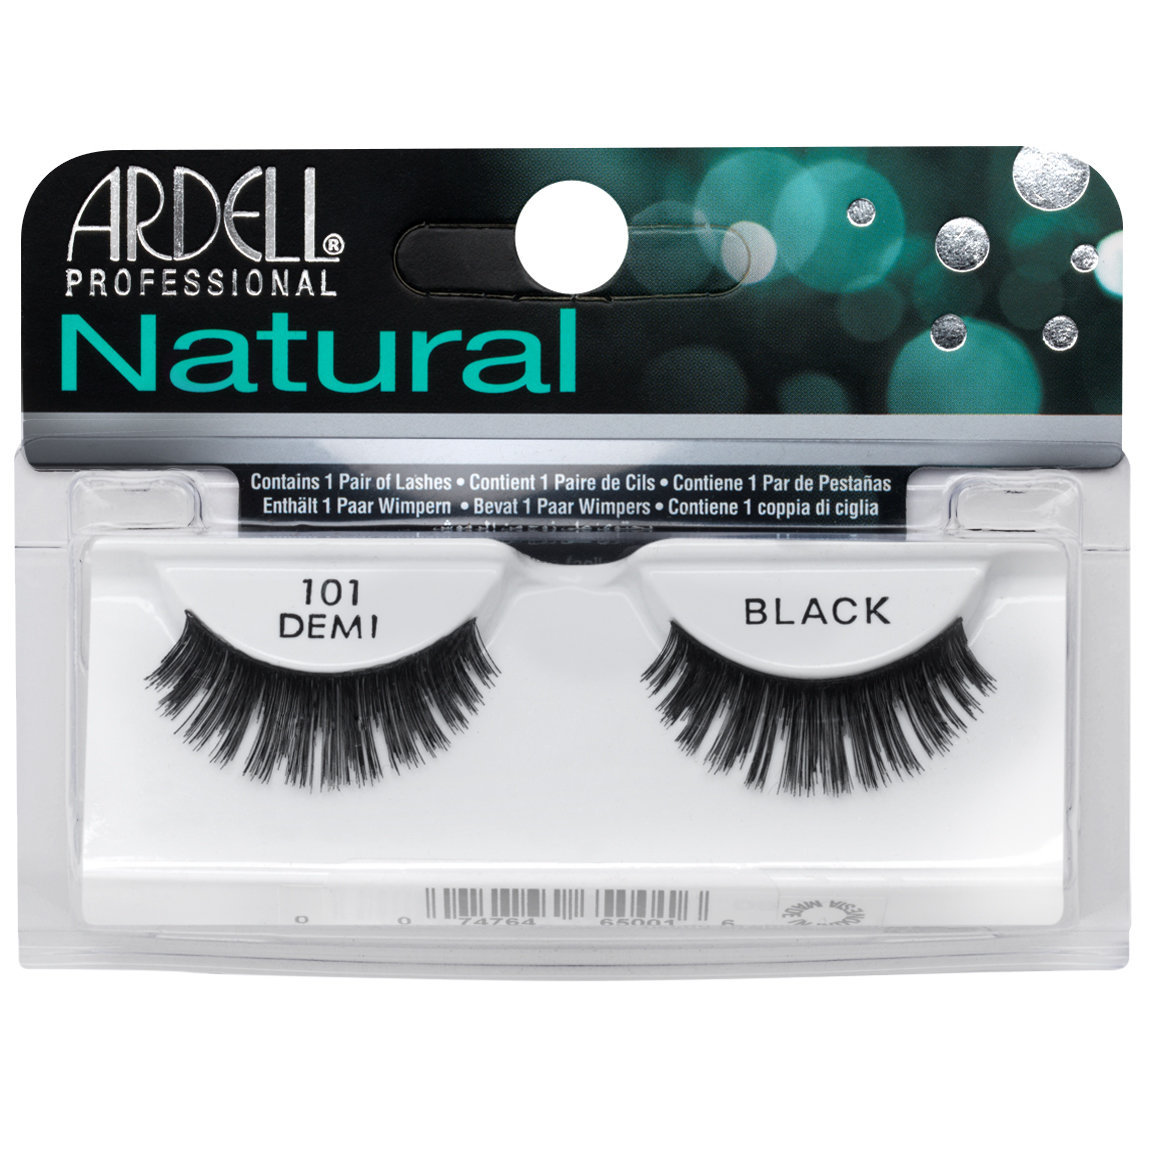 Ardell Natural Lashes 101 Demi Black alternative view 1.